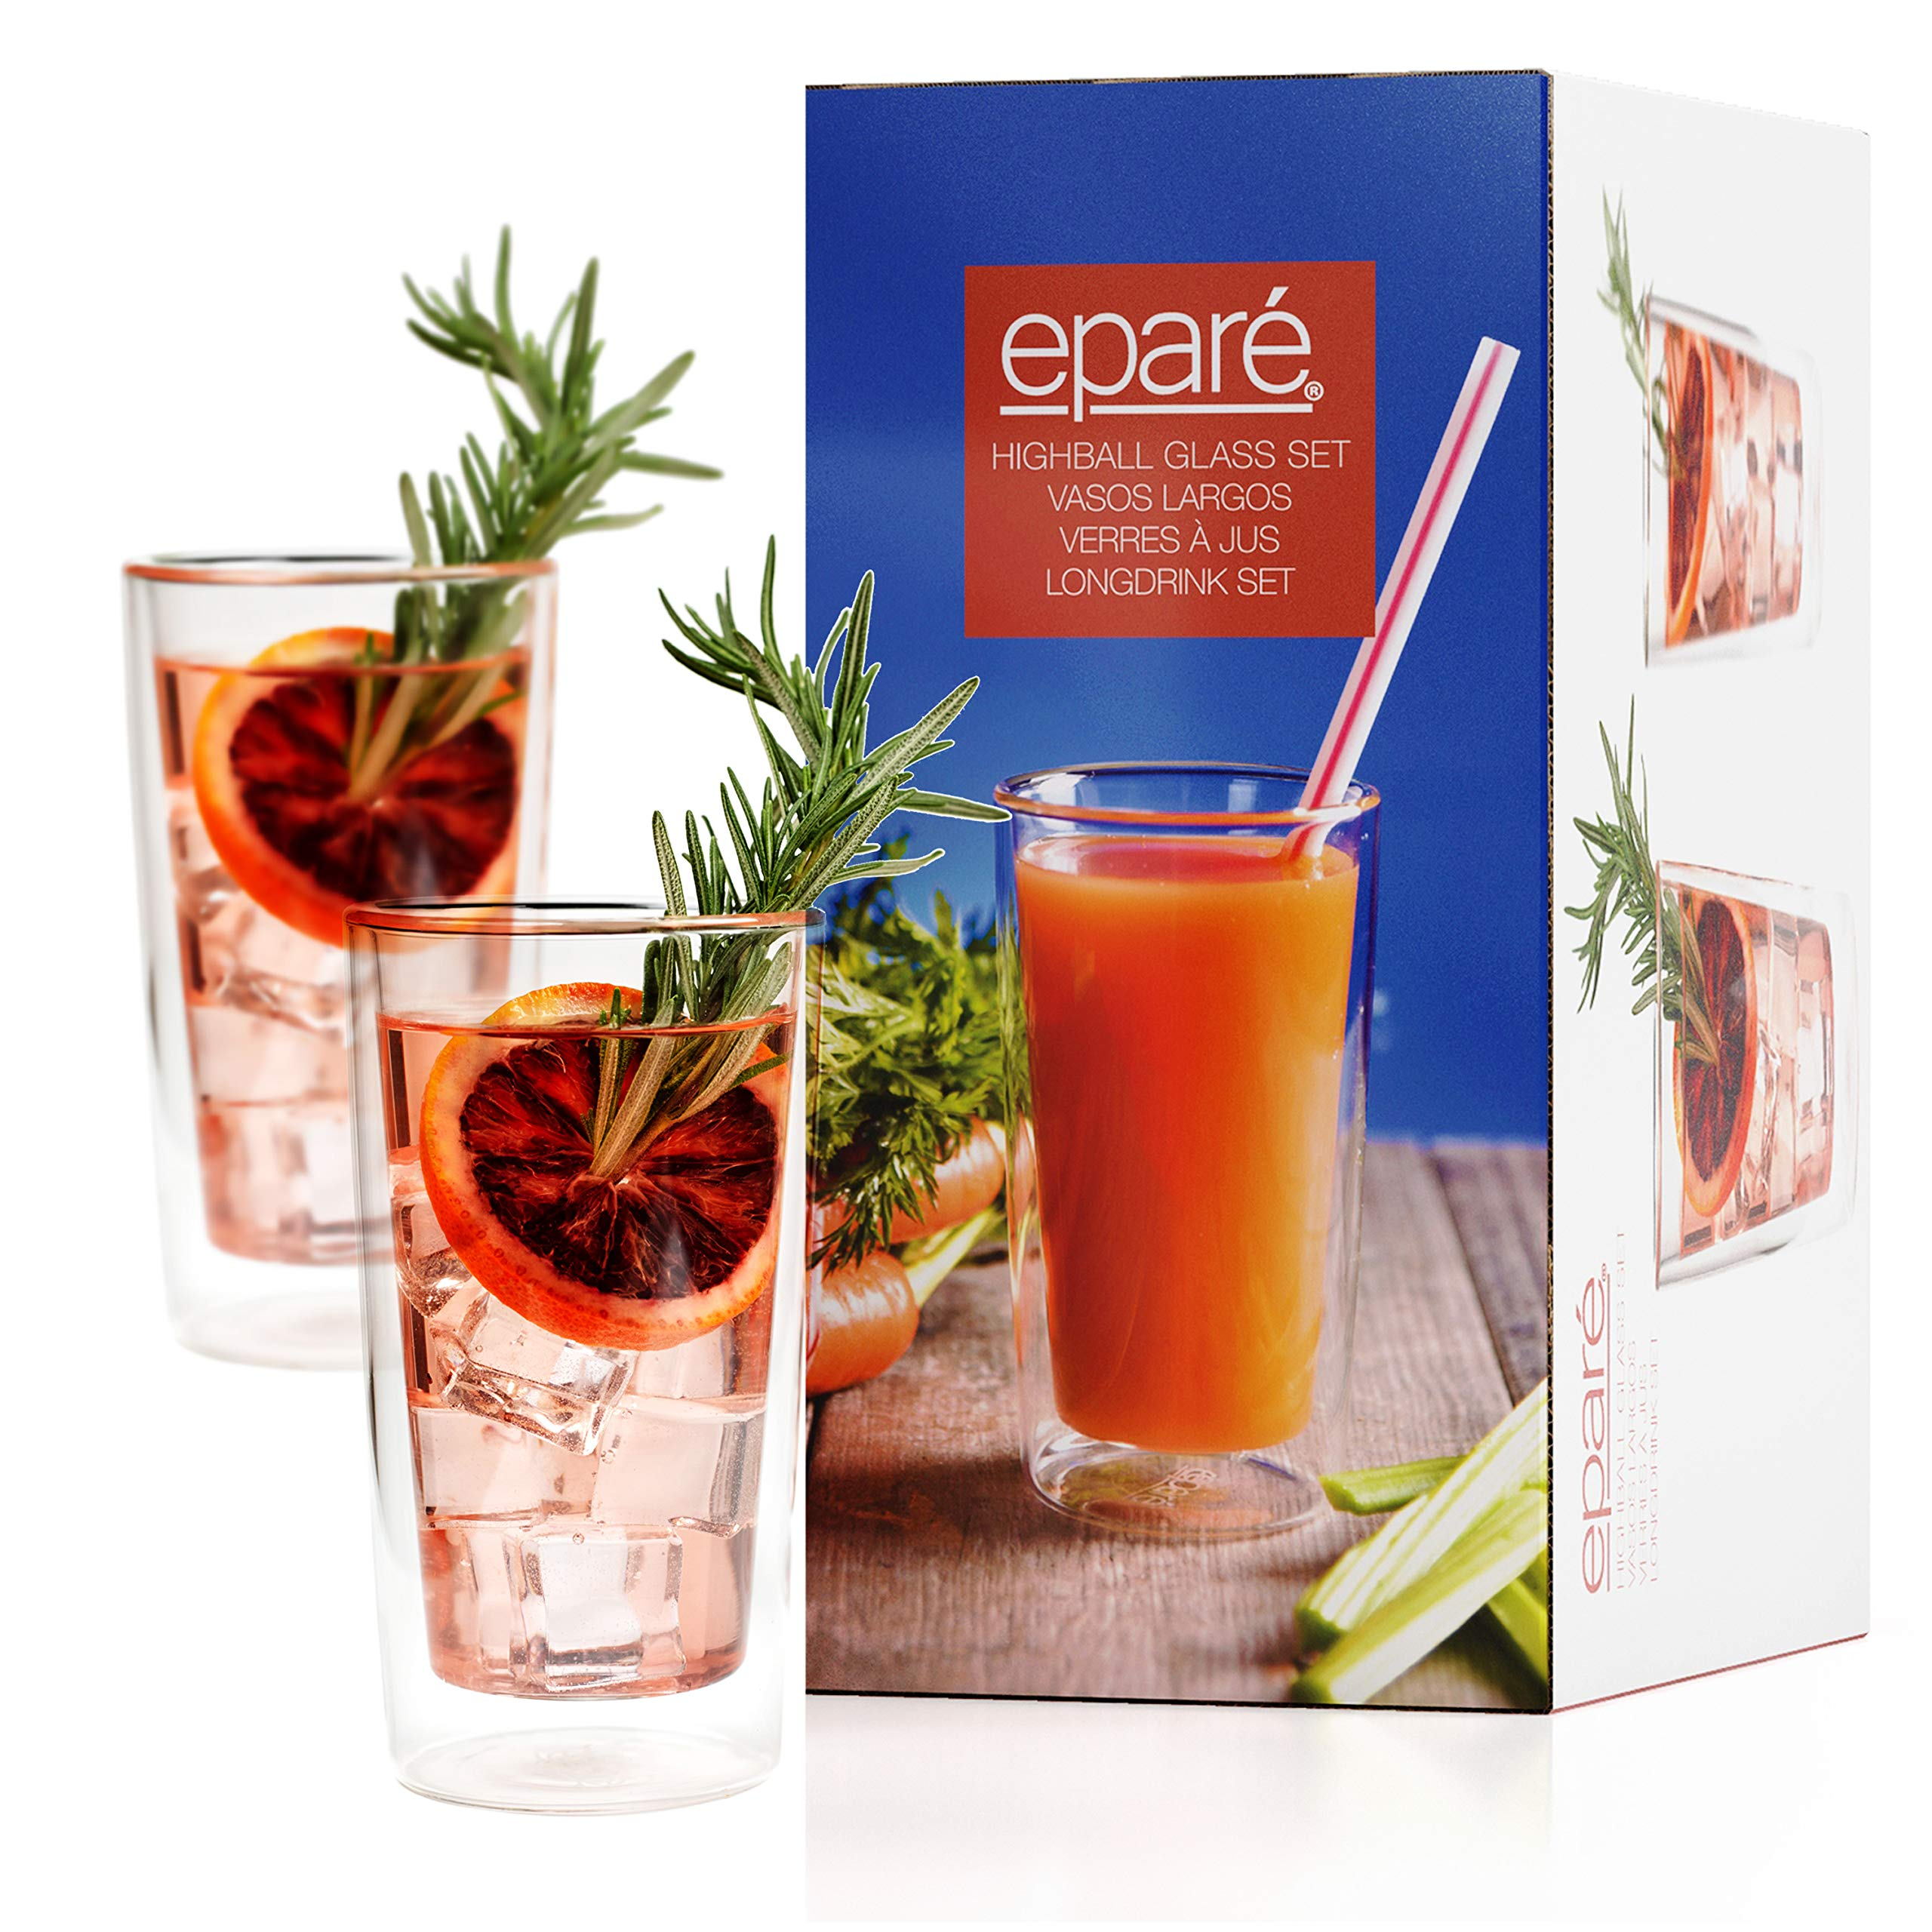 Eparé Highball Glasses - 10 oz Cocktail Glass Tumbler Set - Insulated Drinking Glassware - Iced Tea Juice Beer Drinkware by eparé